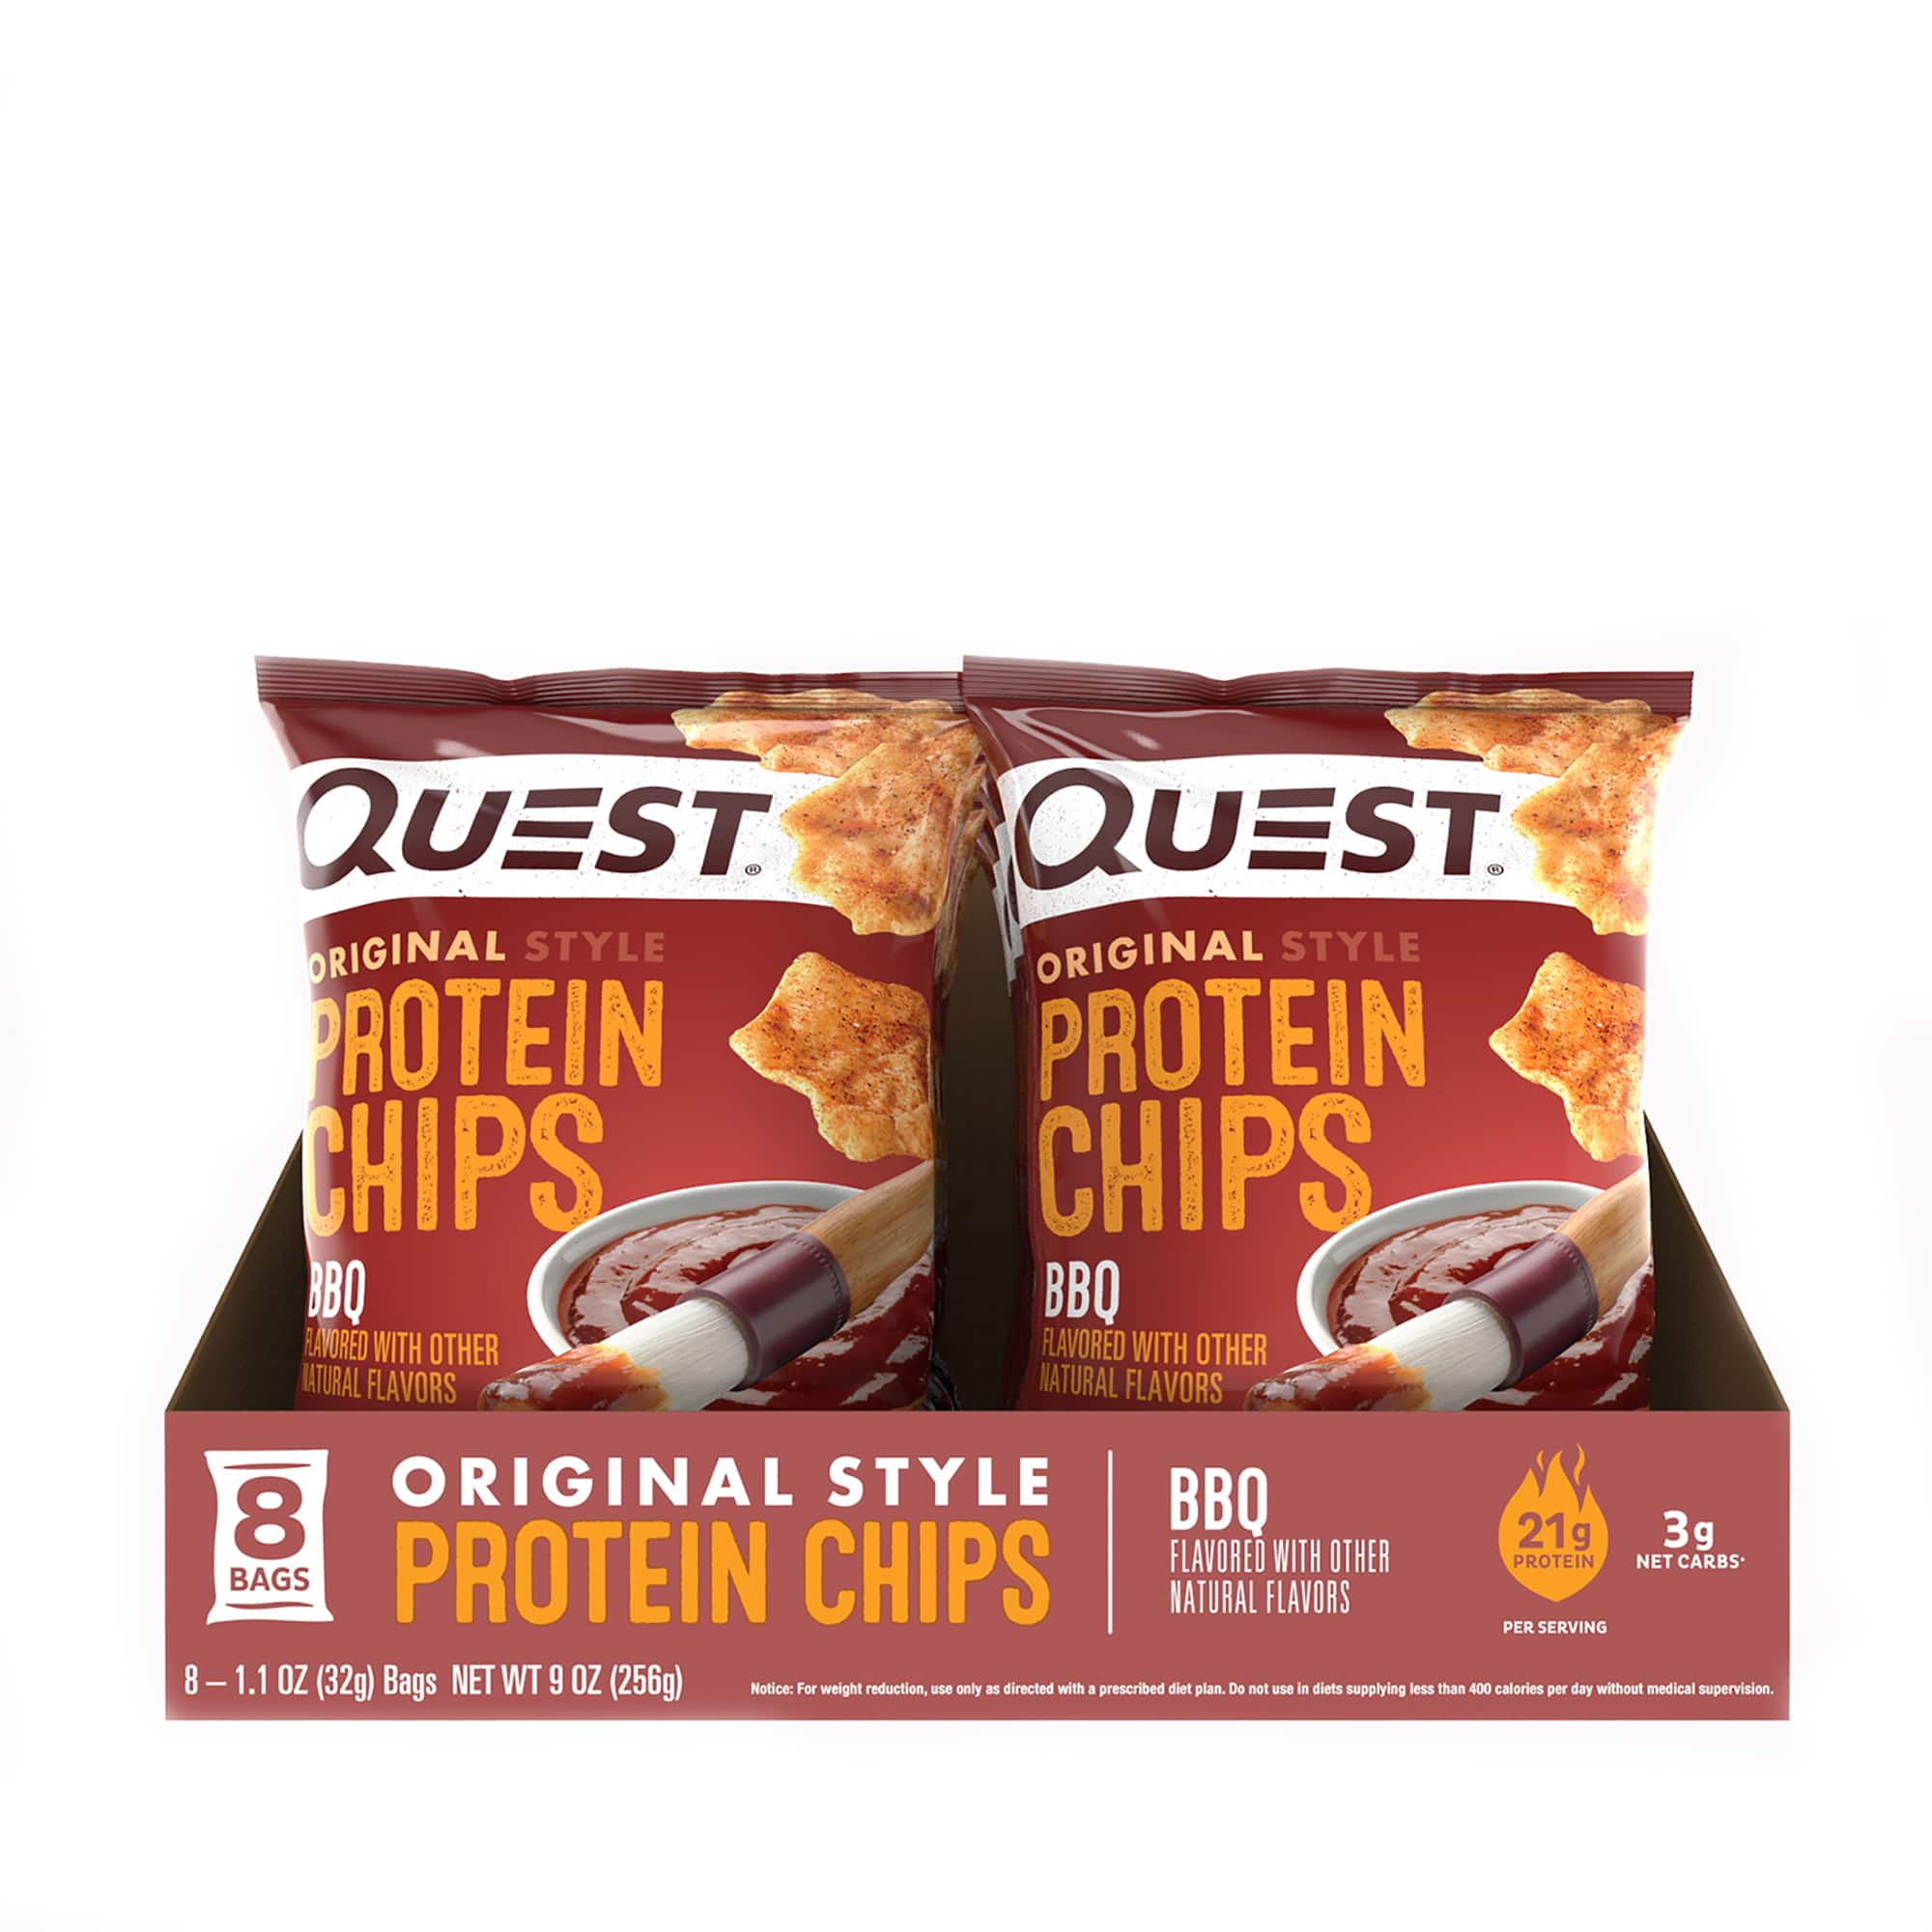 QnA VBage 48-Count 1.1oz Quest Nutrition Protein Chips (various flavors) $46.15 w/ AutoShip + Free S&H